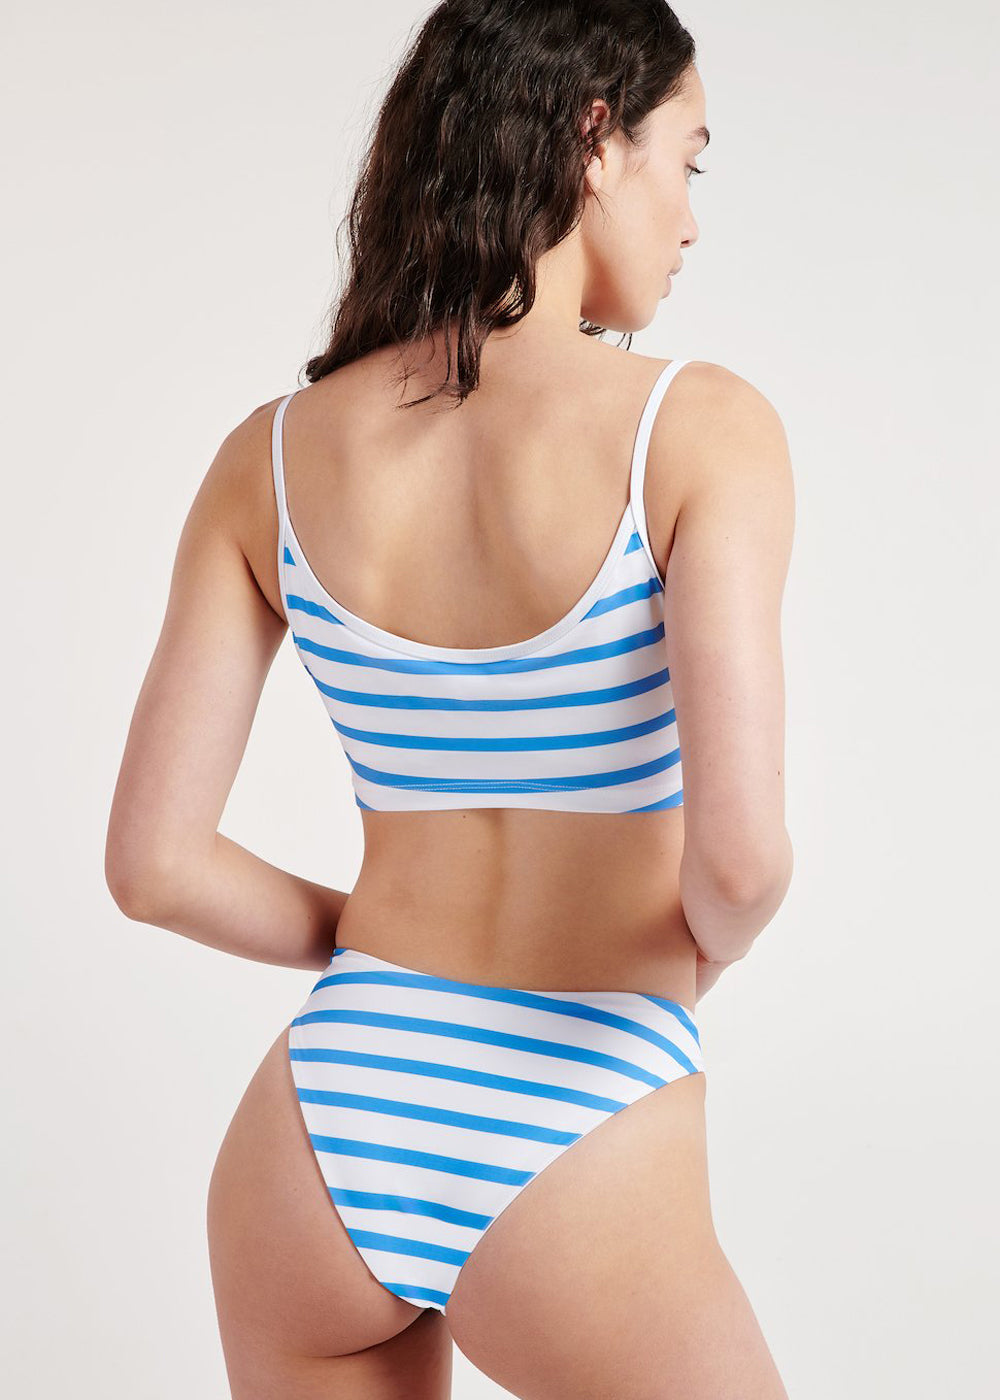 Seattle Swim Top - Ocean Stripe - cara cara